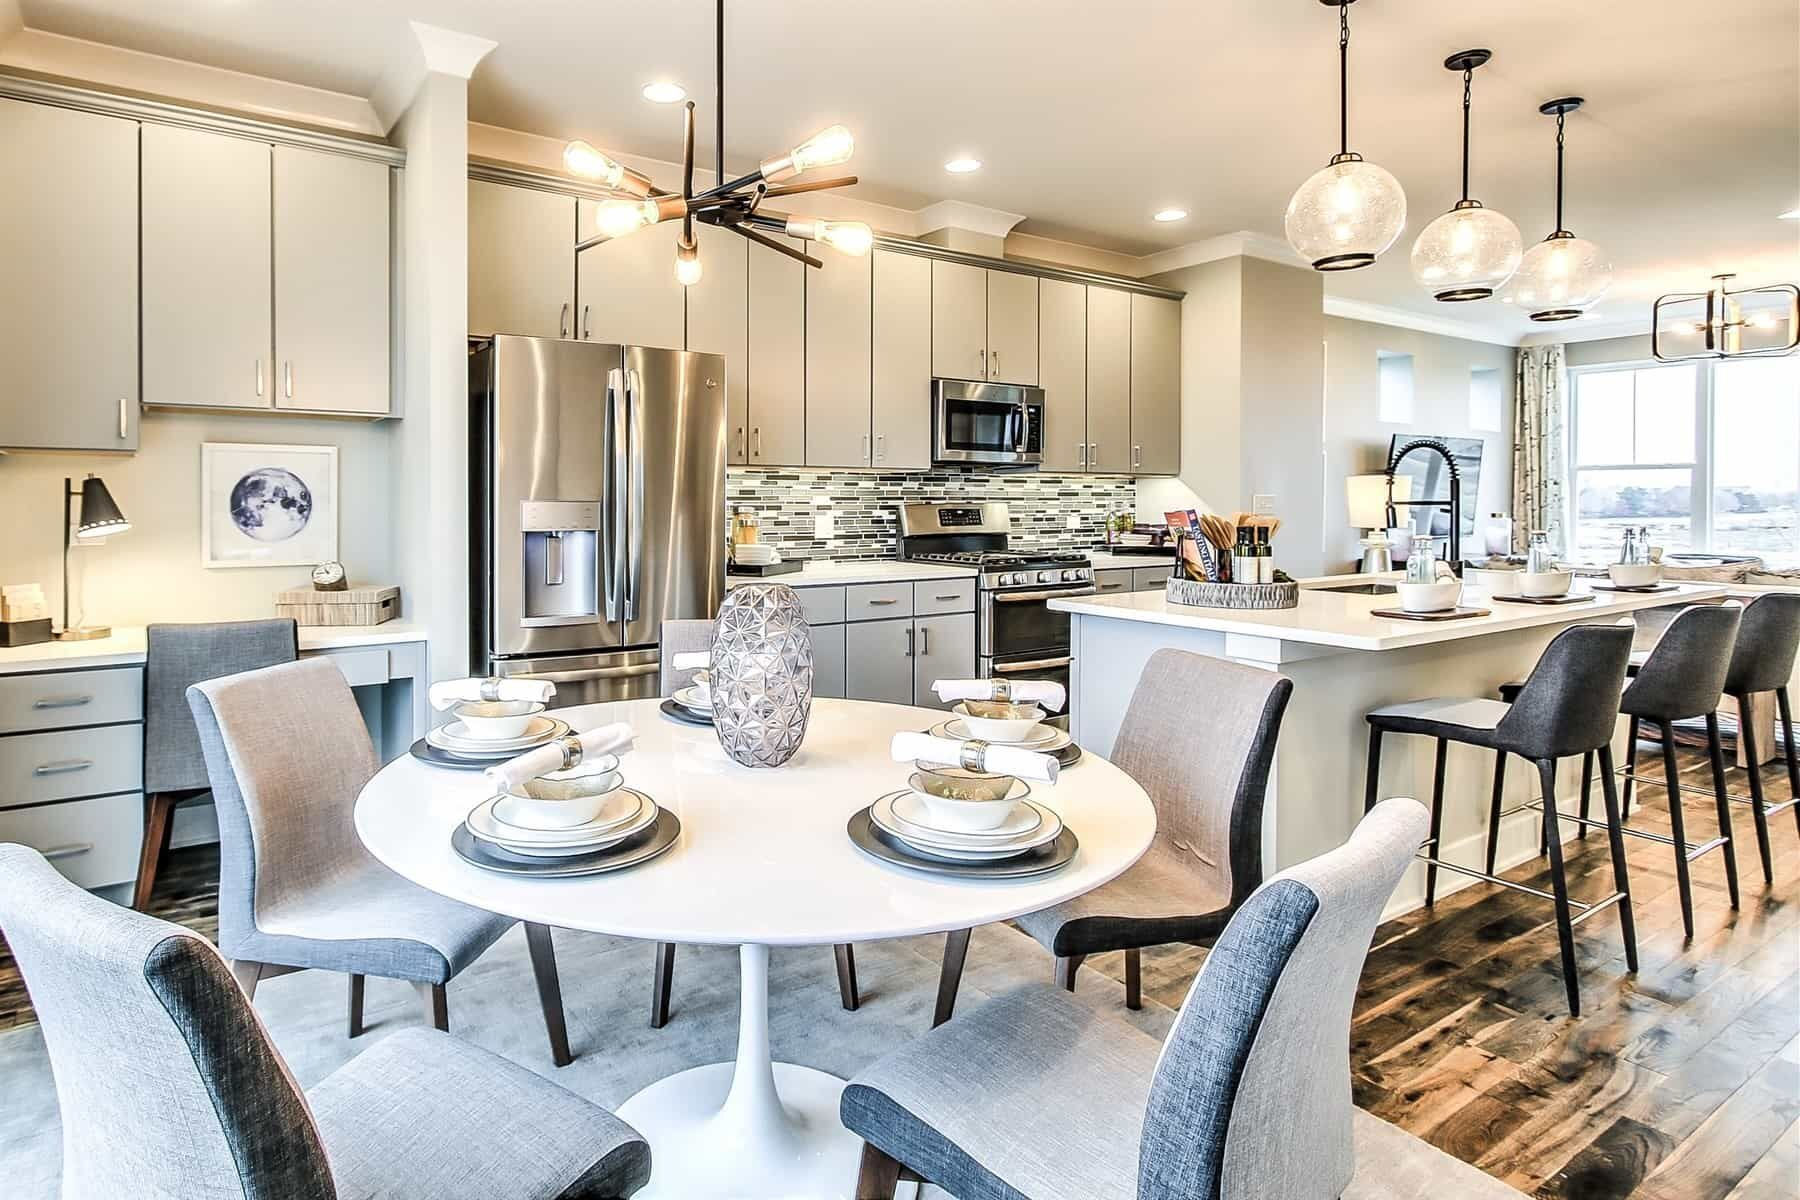 'Gramercy Square' by M/I Homes-Chicago in Chicago